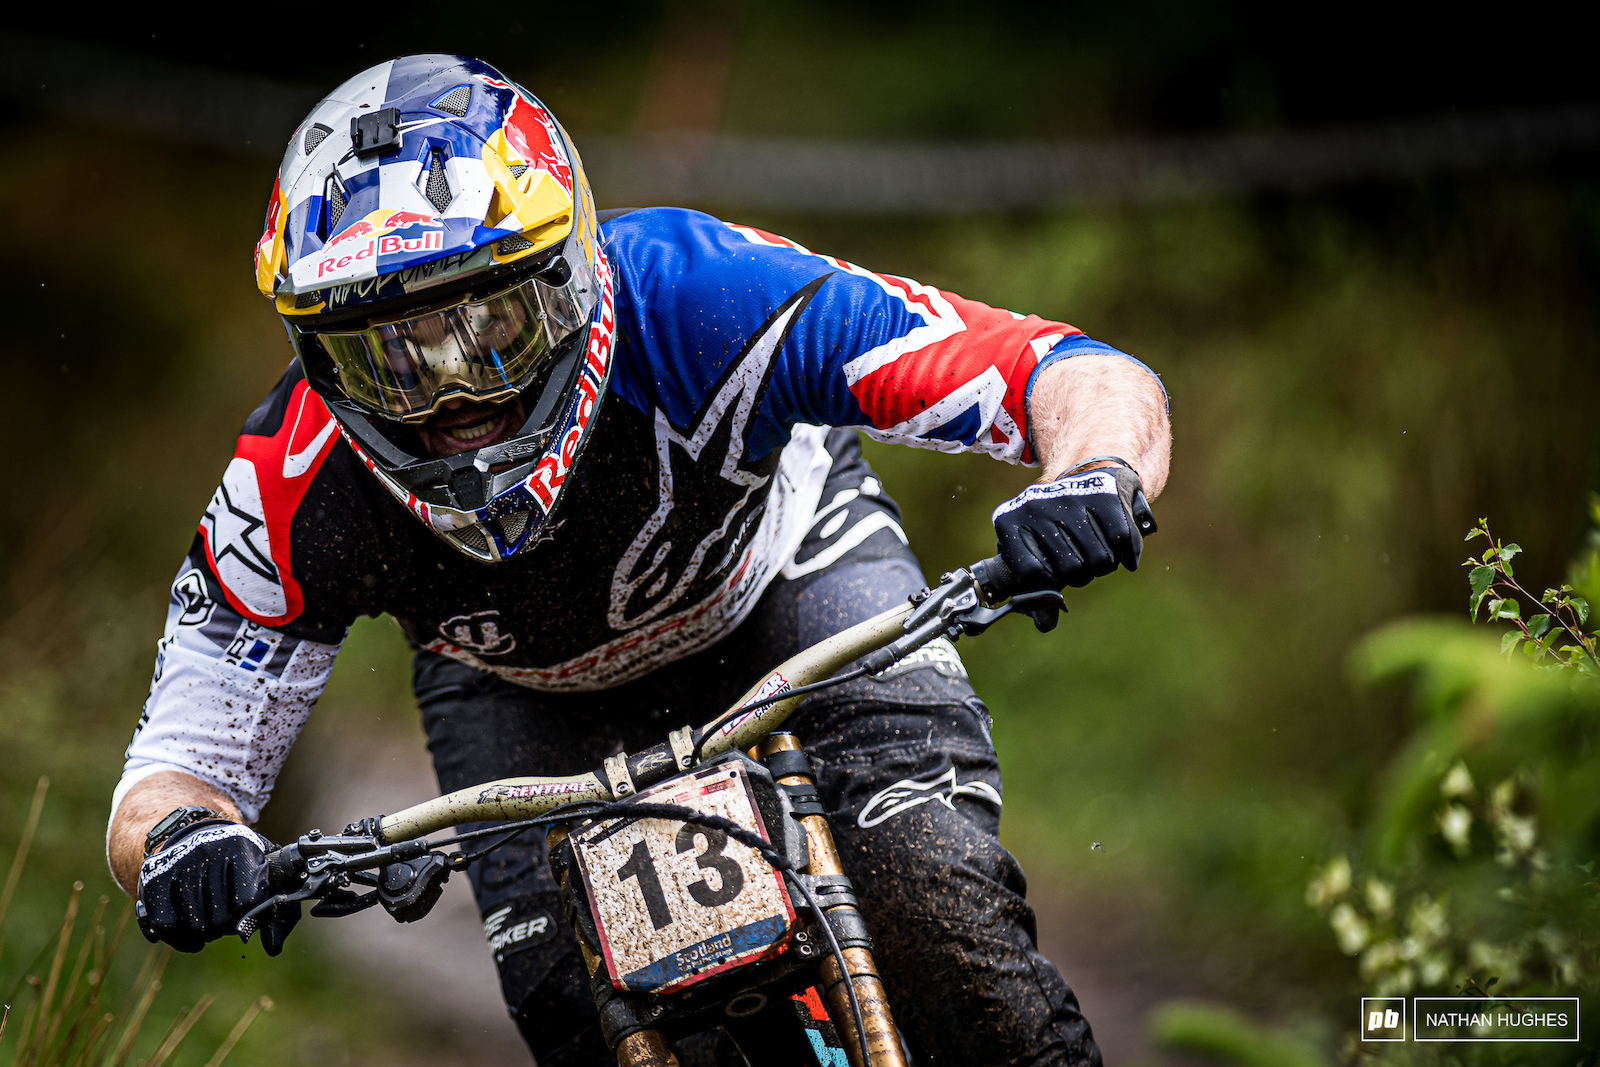 Brook MacDonald climbed steadily up the rankings through the splits for a top 10 and upgraded plate headed to Austria.